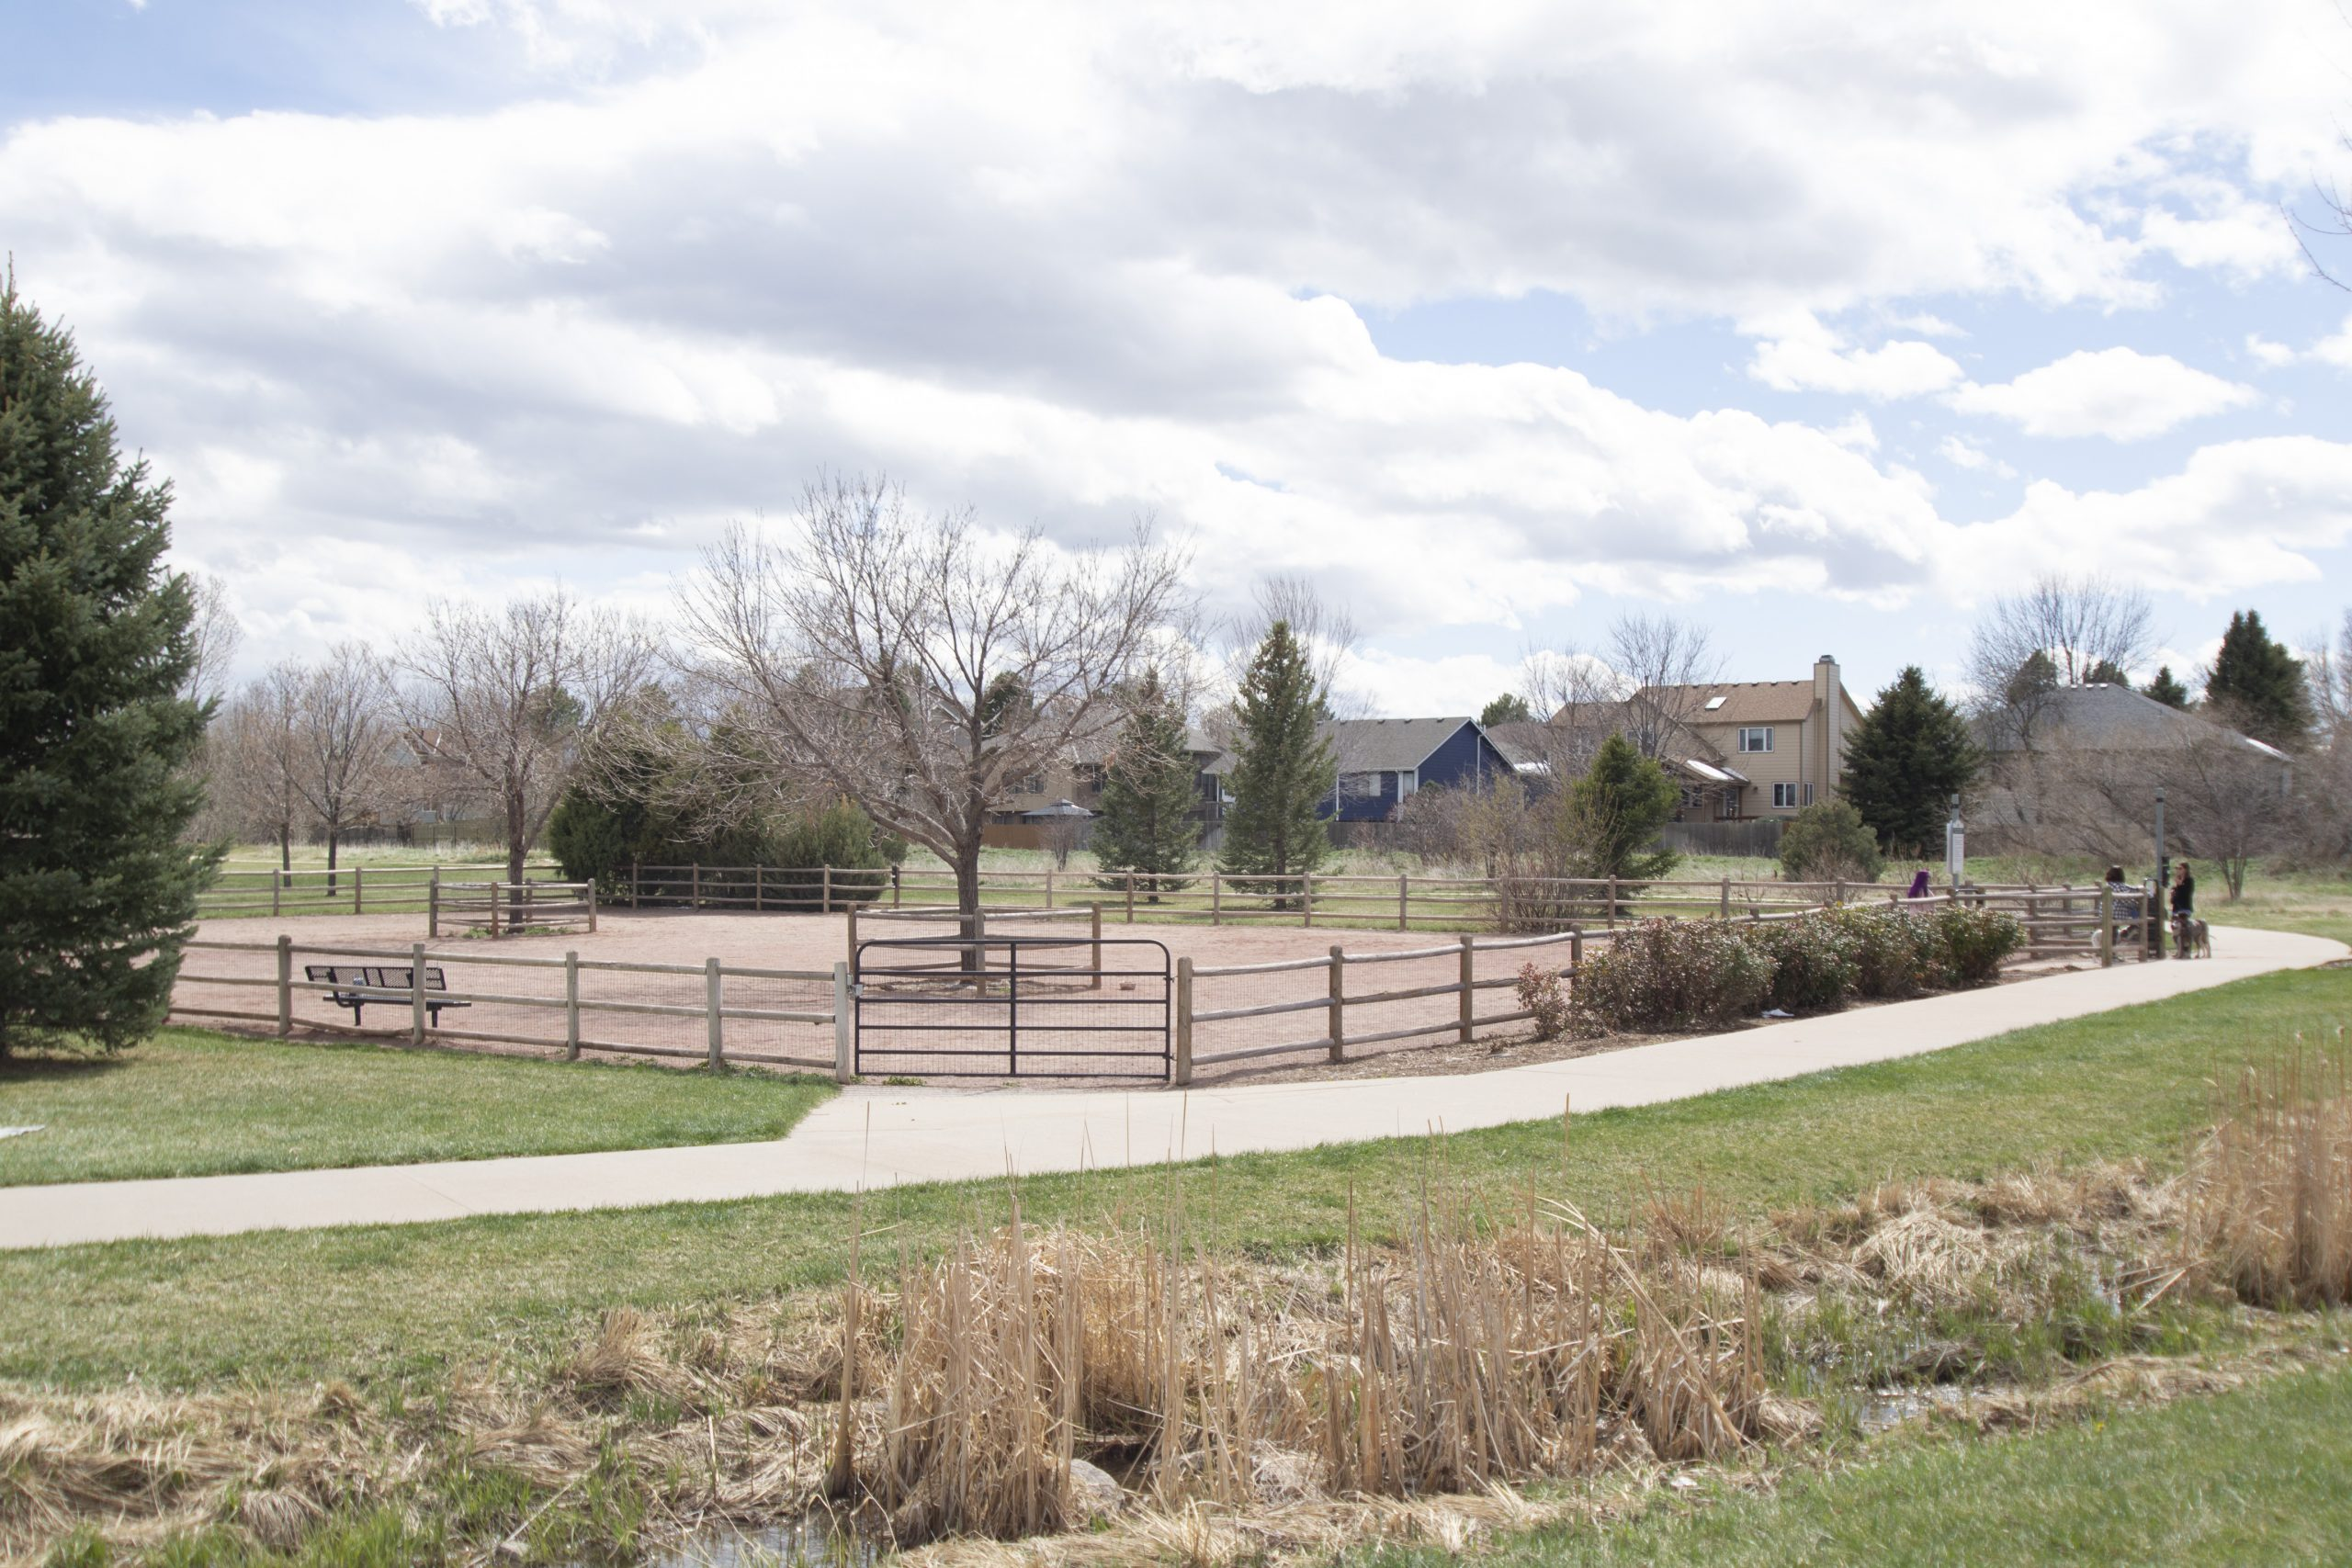 REAL ESTATE LISTING: 2182 Steppe Dr Longmont Covered Neighborhood Dog Park